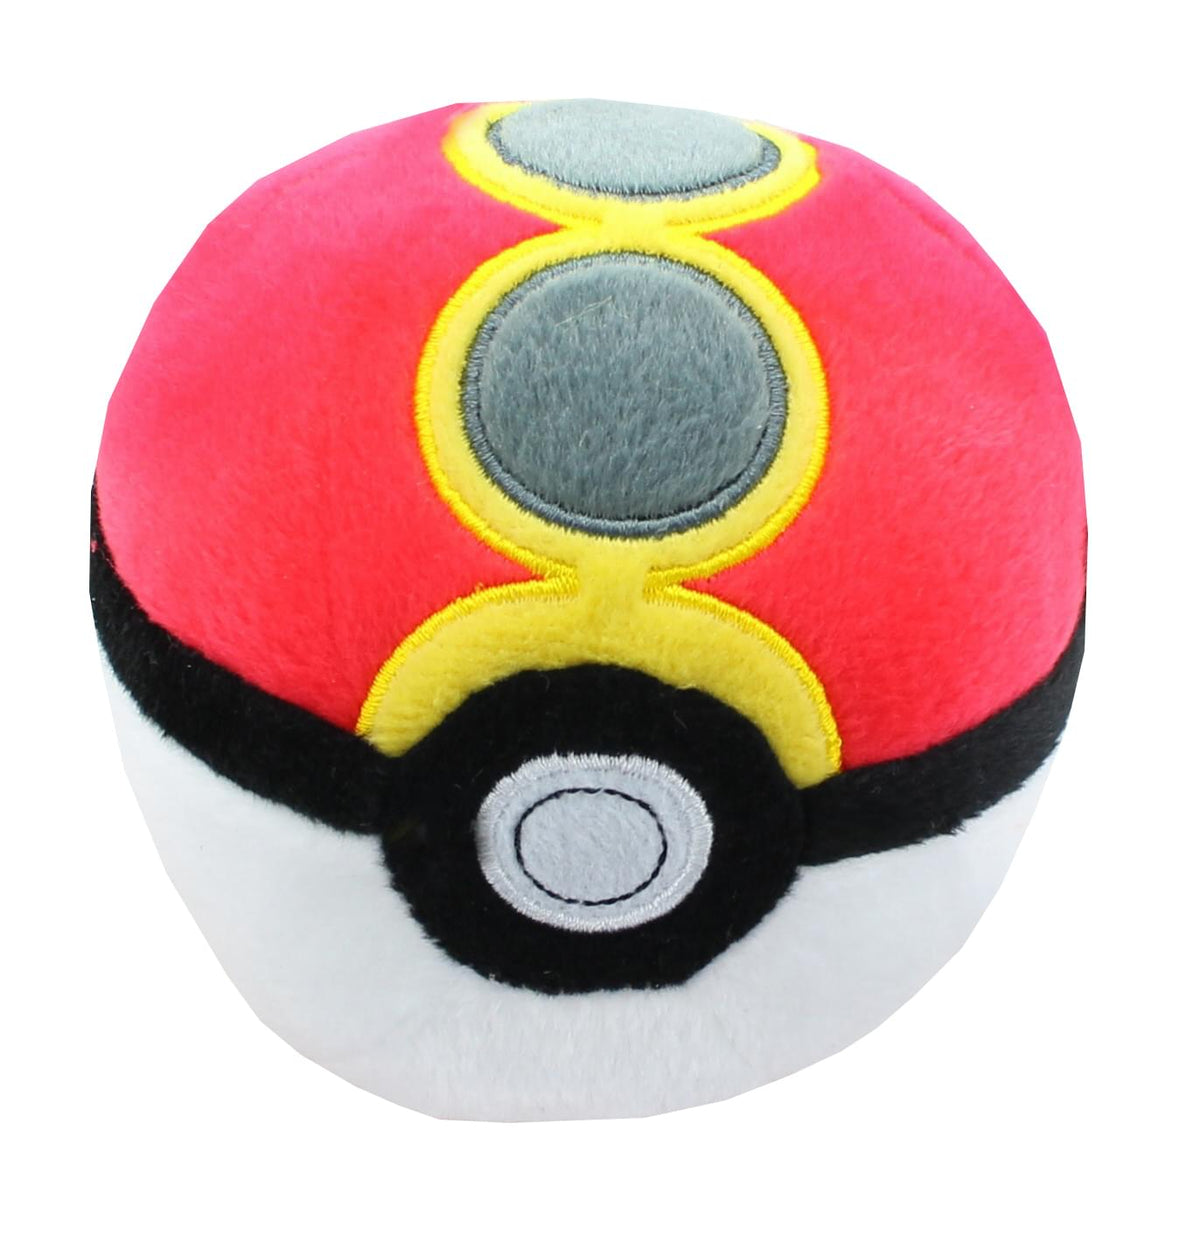 Pokemon Poke Ball 5 Inch Plush - Repeat Ball